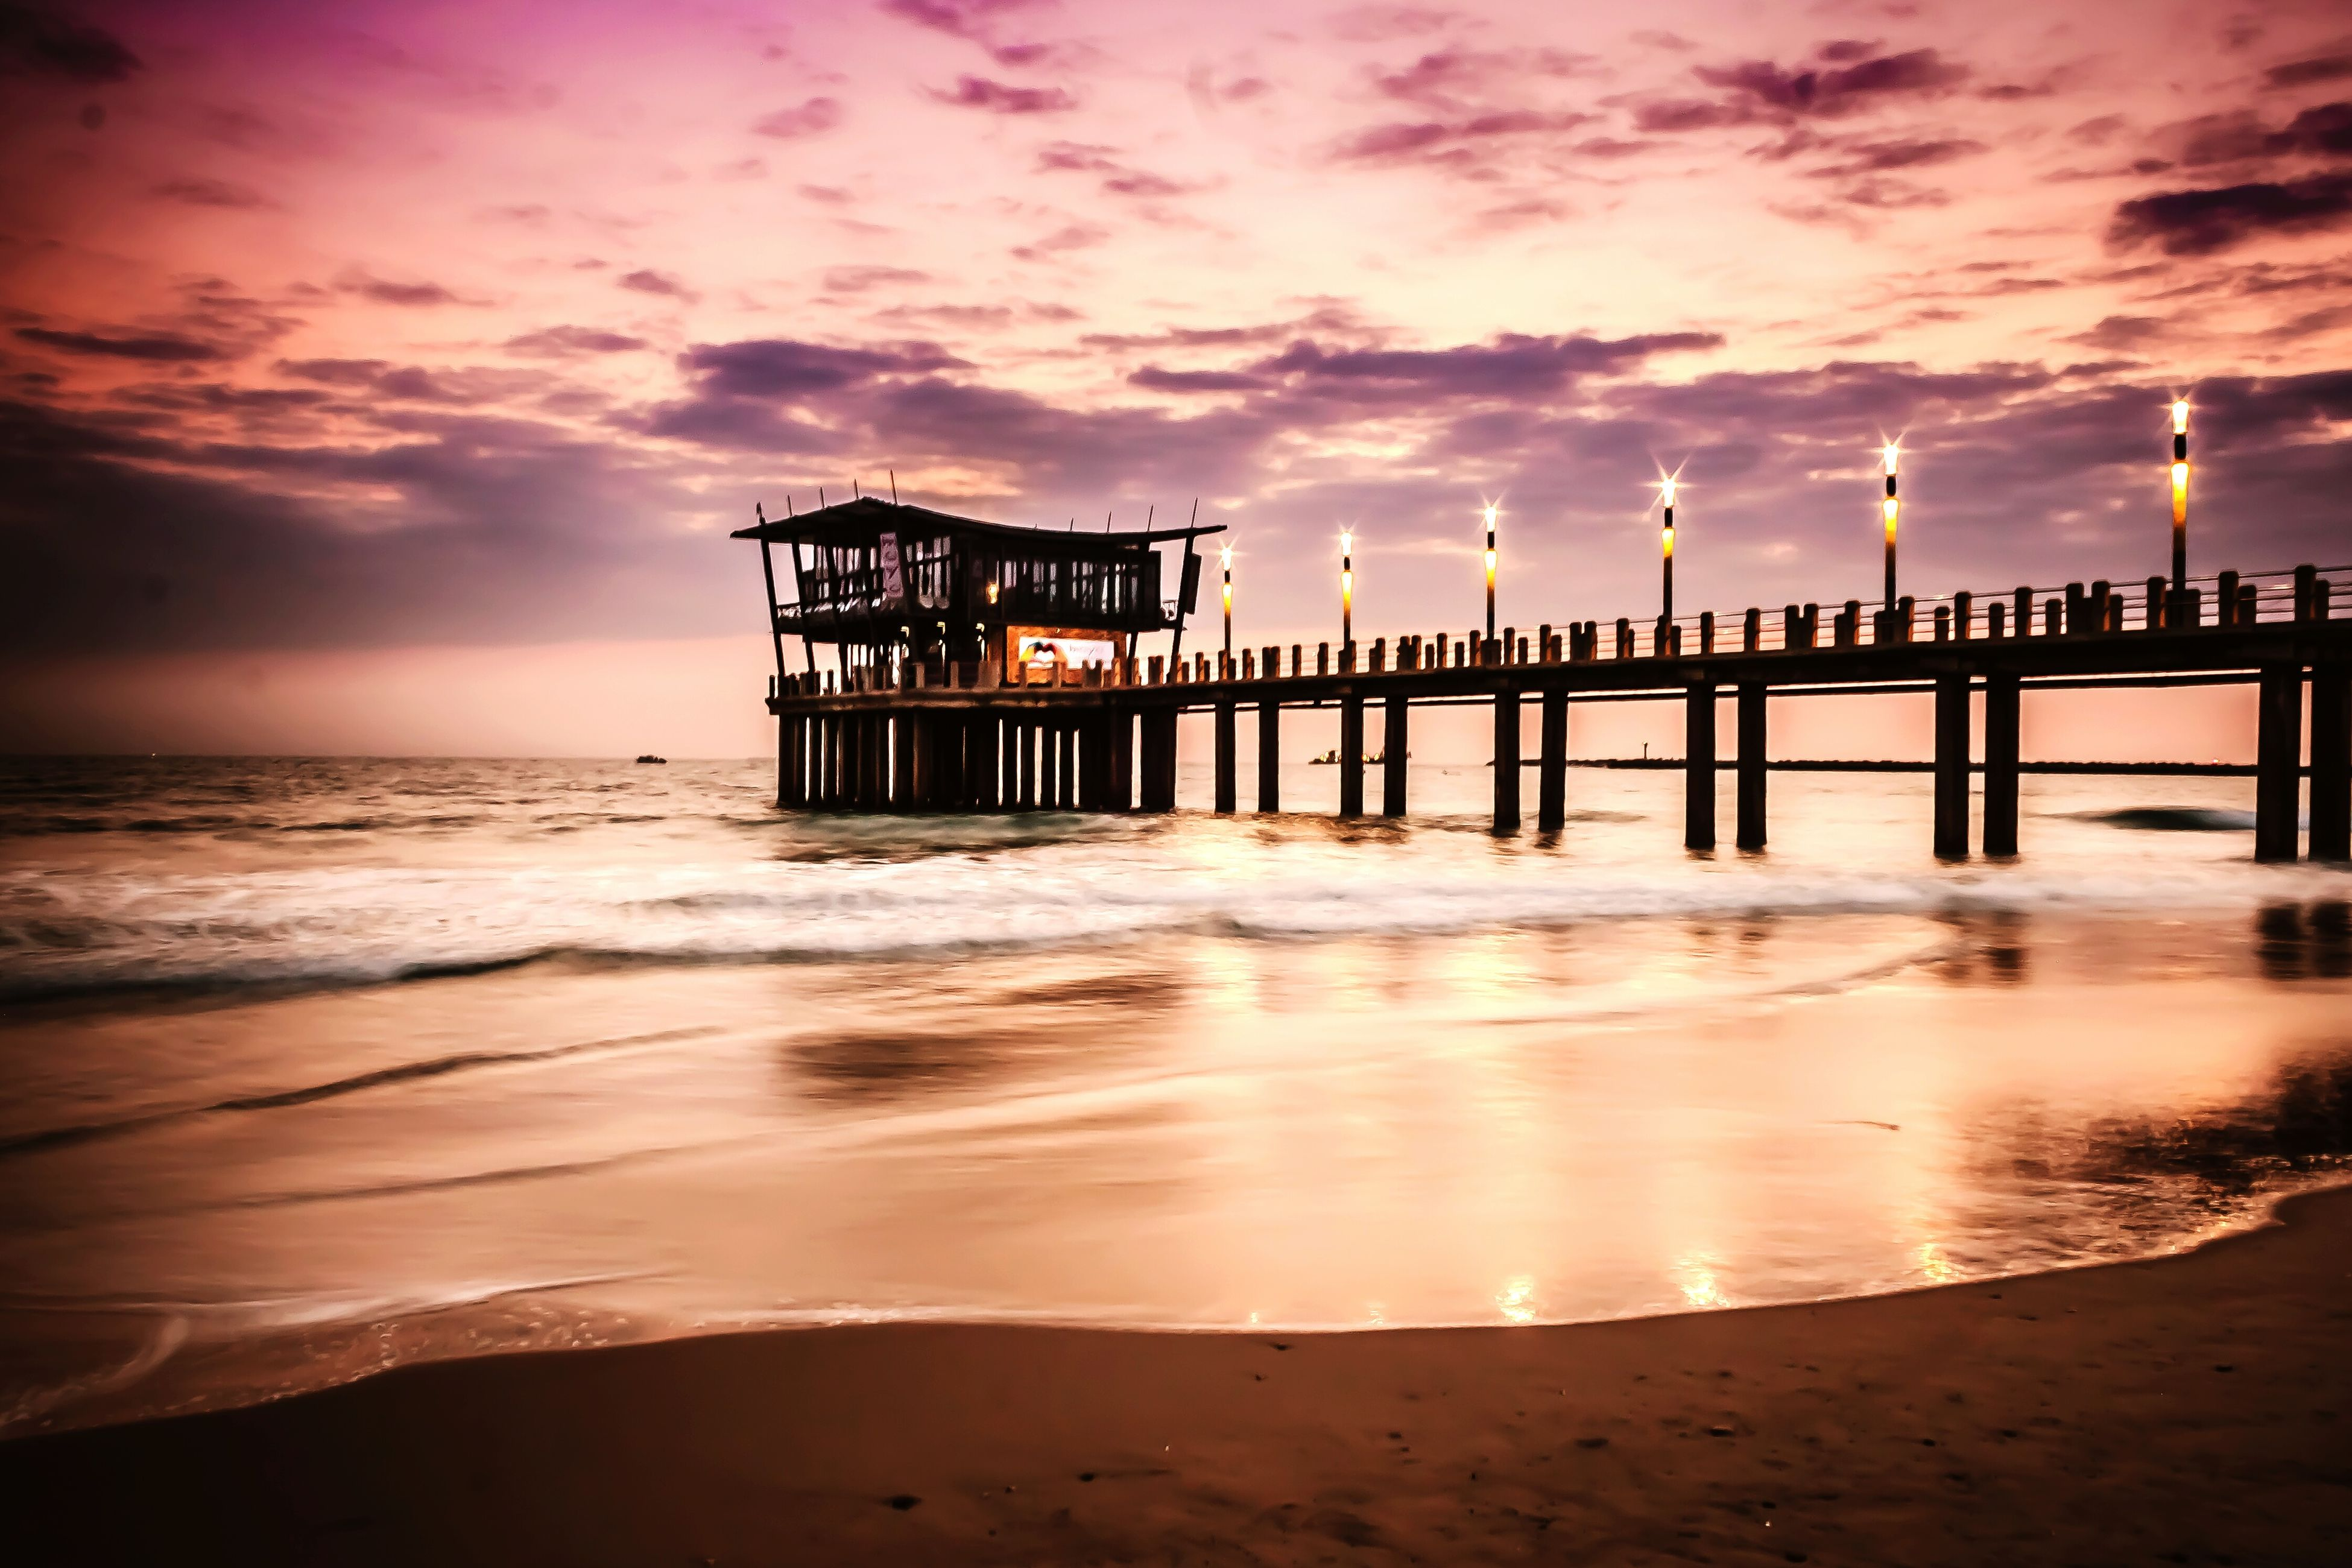 sea, water, beach, sky, sunset, horizon over water, shore, cloud - sky, built structure, sand, scenics, architecture, tranquil scene, tranquility, pier, beauty in nature, wave, nature, dusk, cloudy